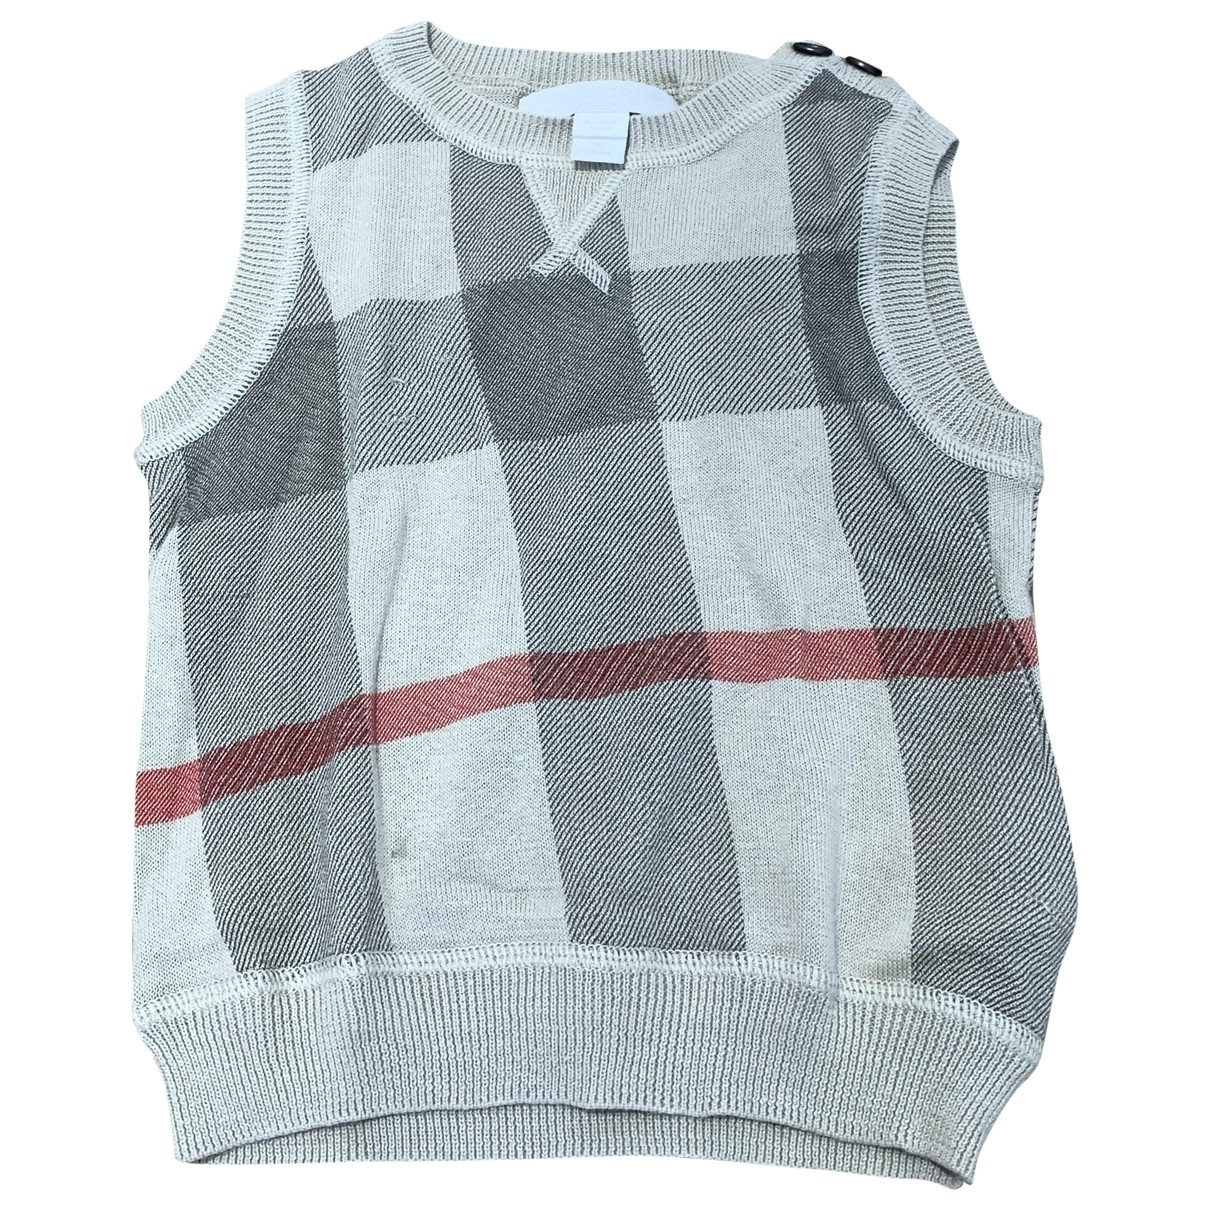 Burberry \N Beige Cotton Knitwear for Kids 9 months - until 28 inches UK